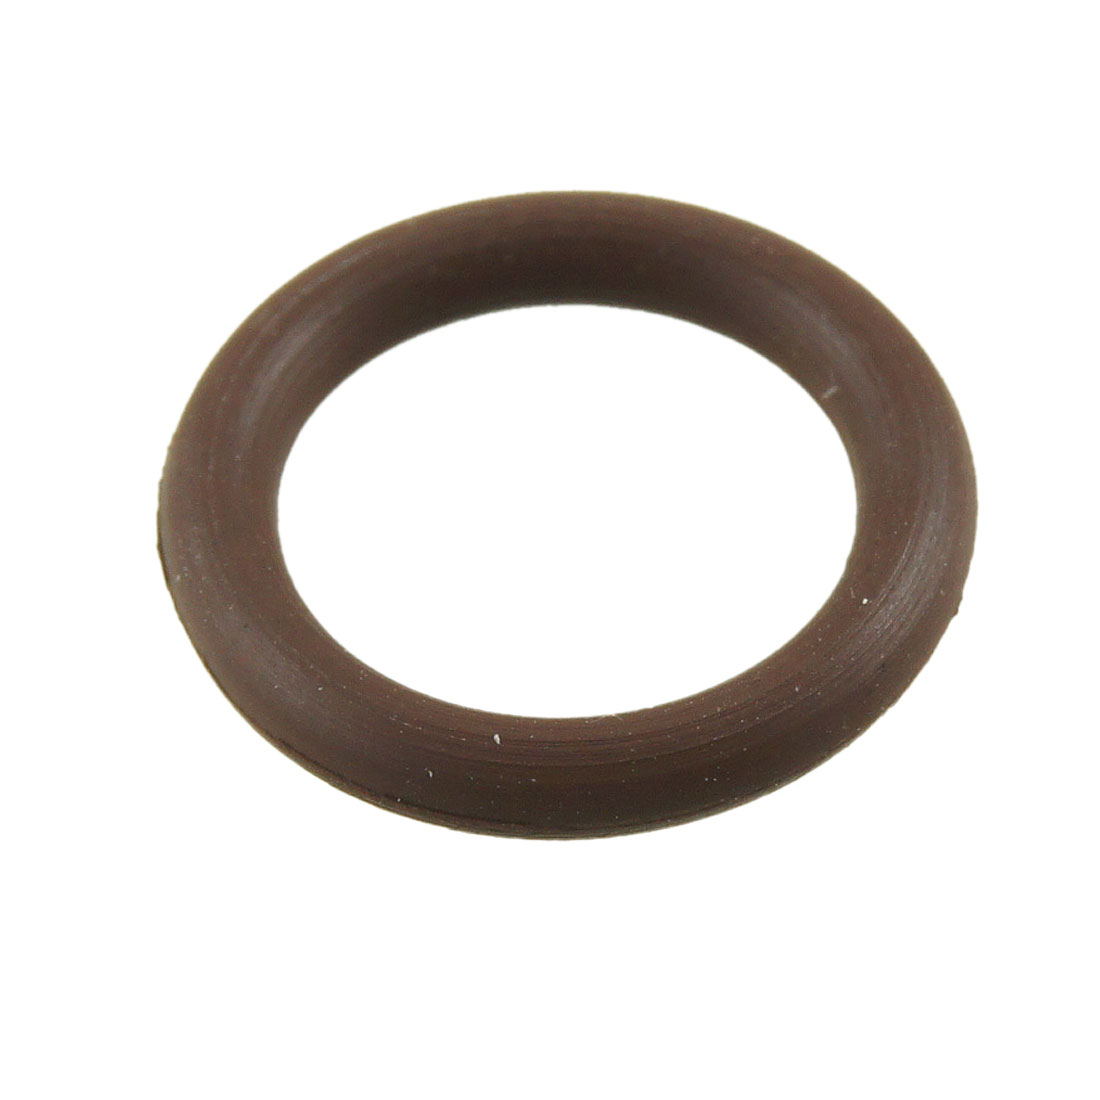 Fluorine Rubber O Ring Oil Sealing Gaskets 14mm x 10mm x 2mm